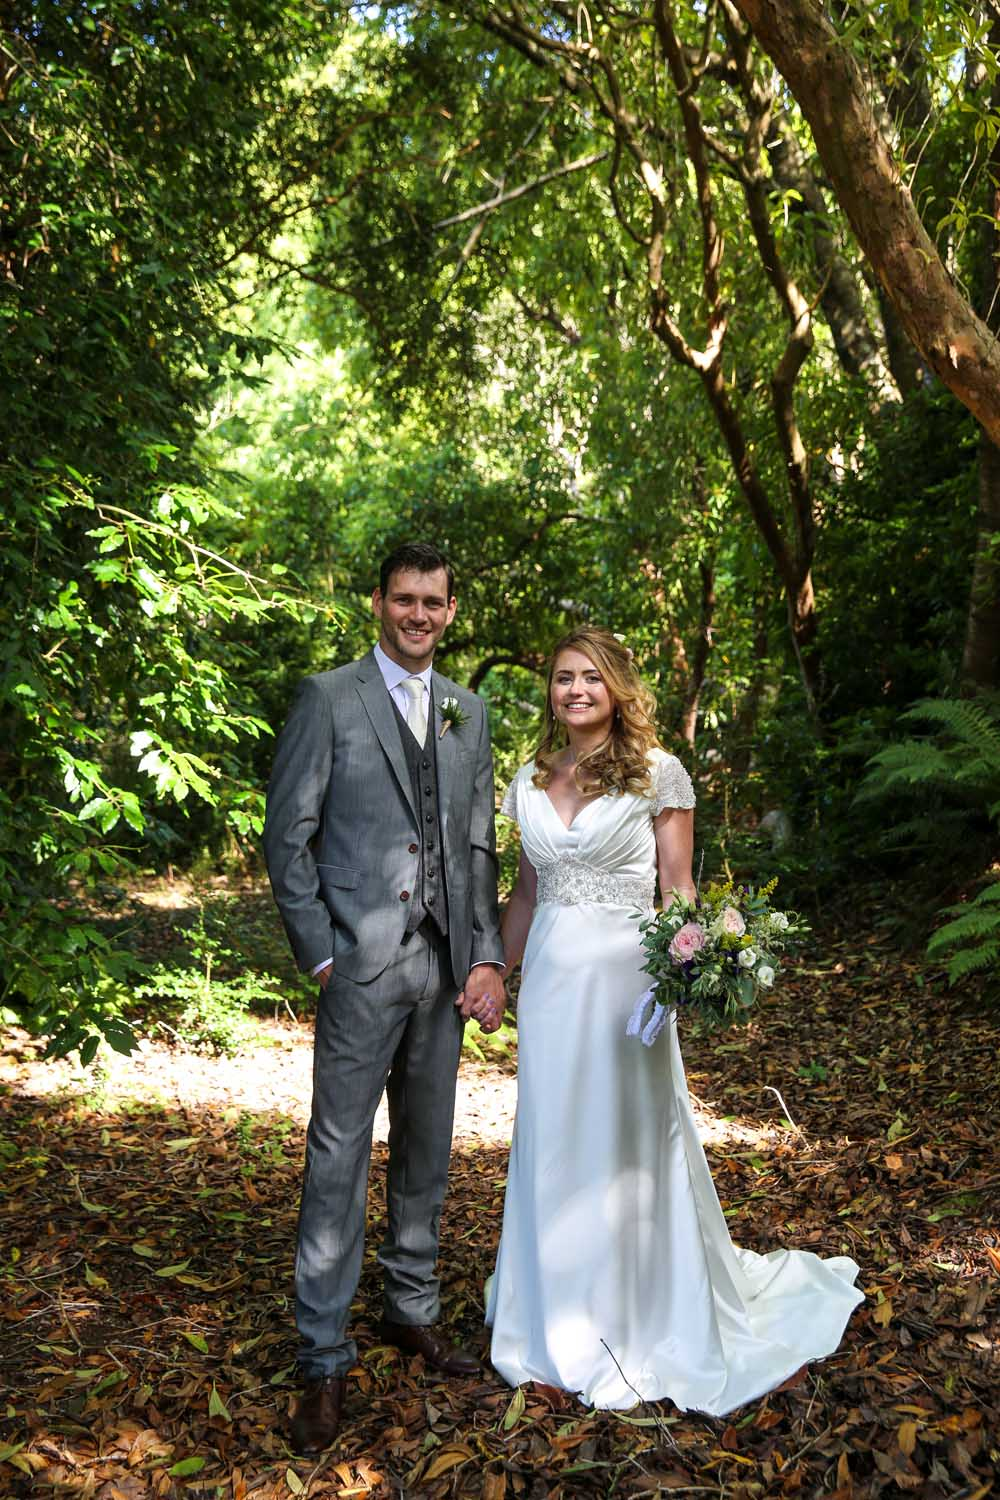 Bride and Groom at Killruddery gardens on their wedding day